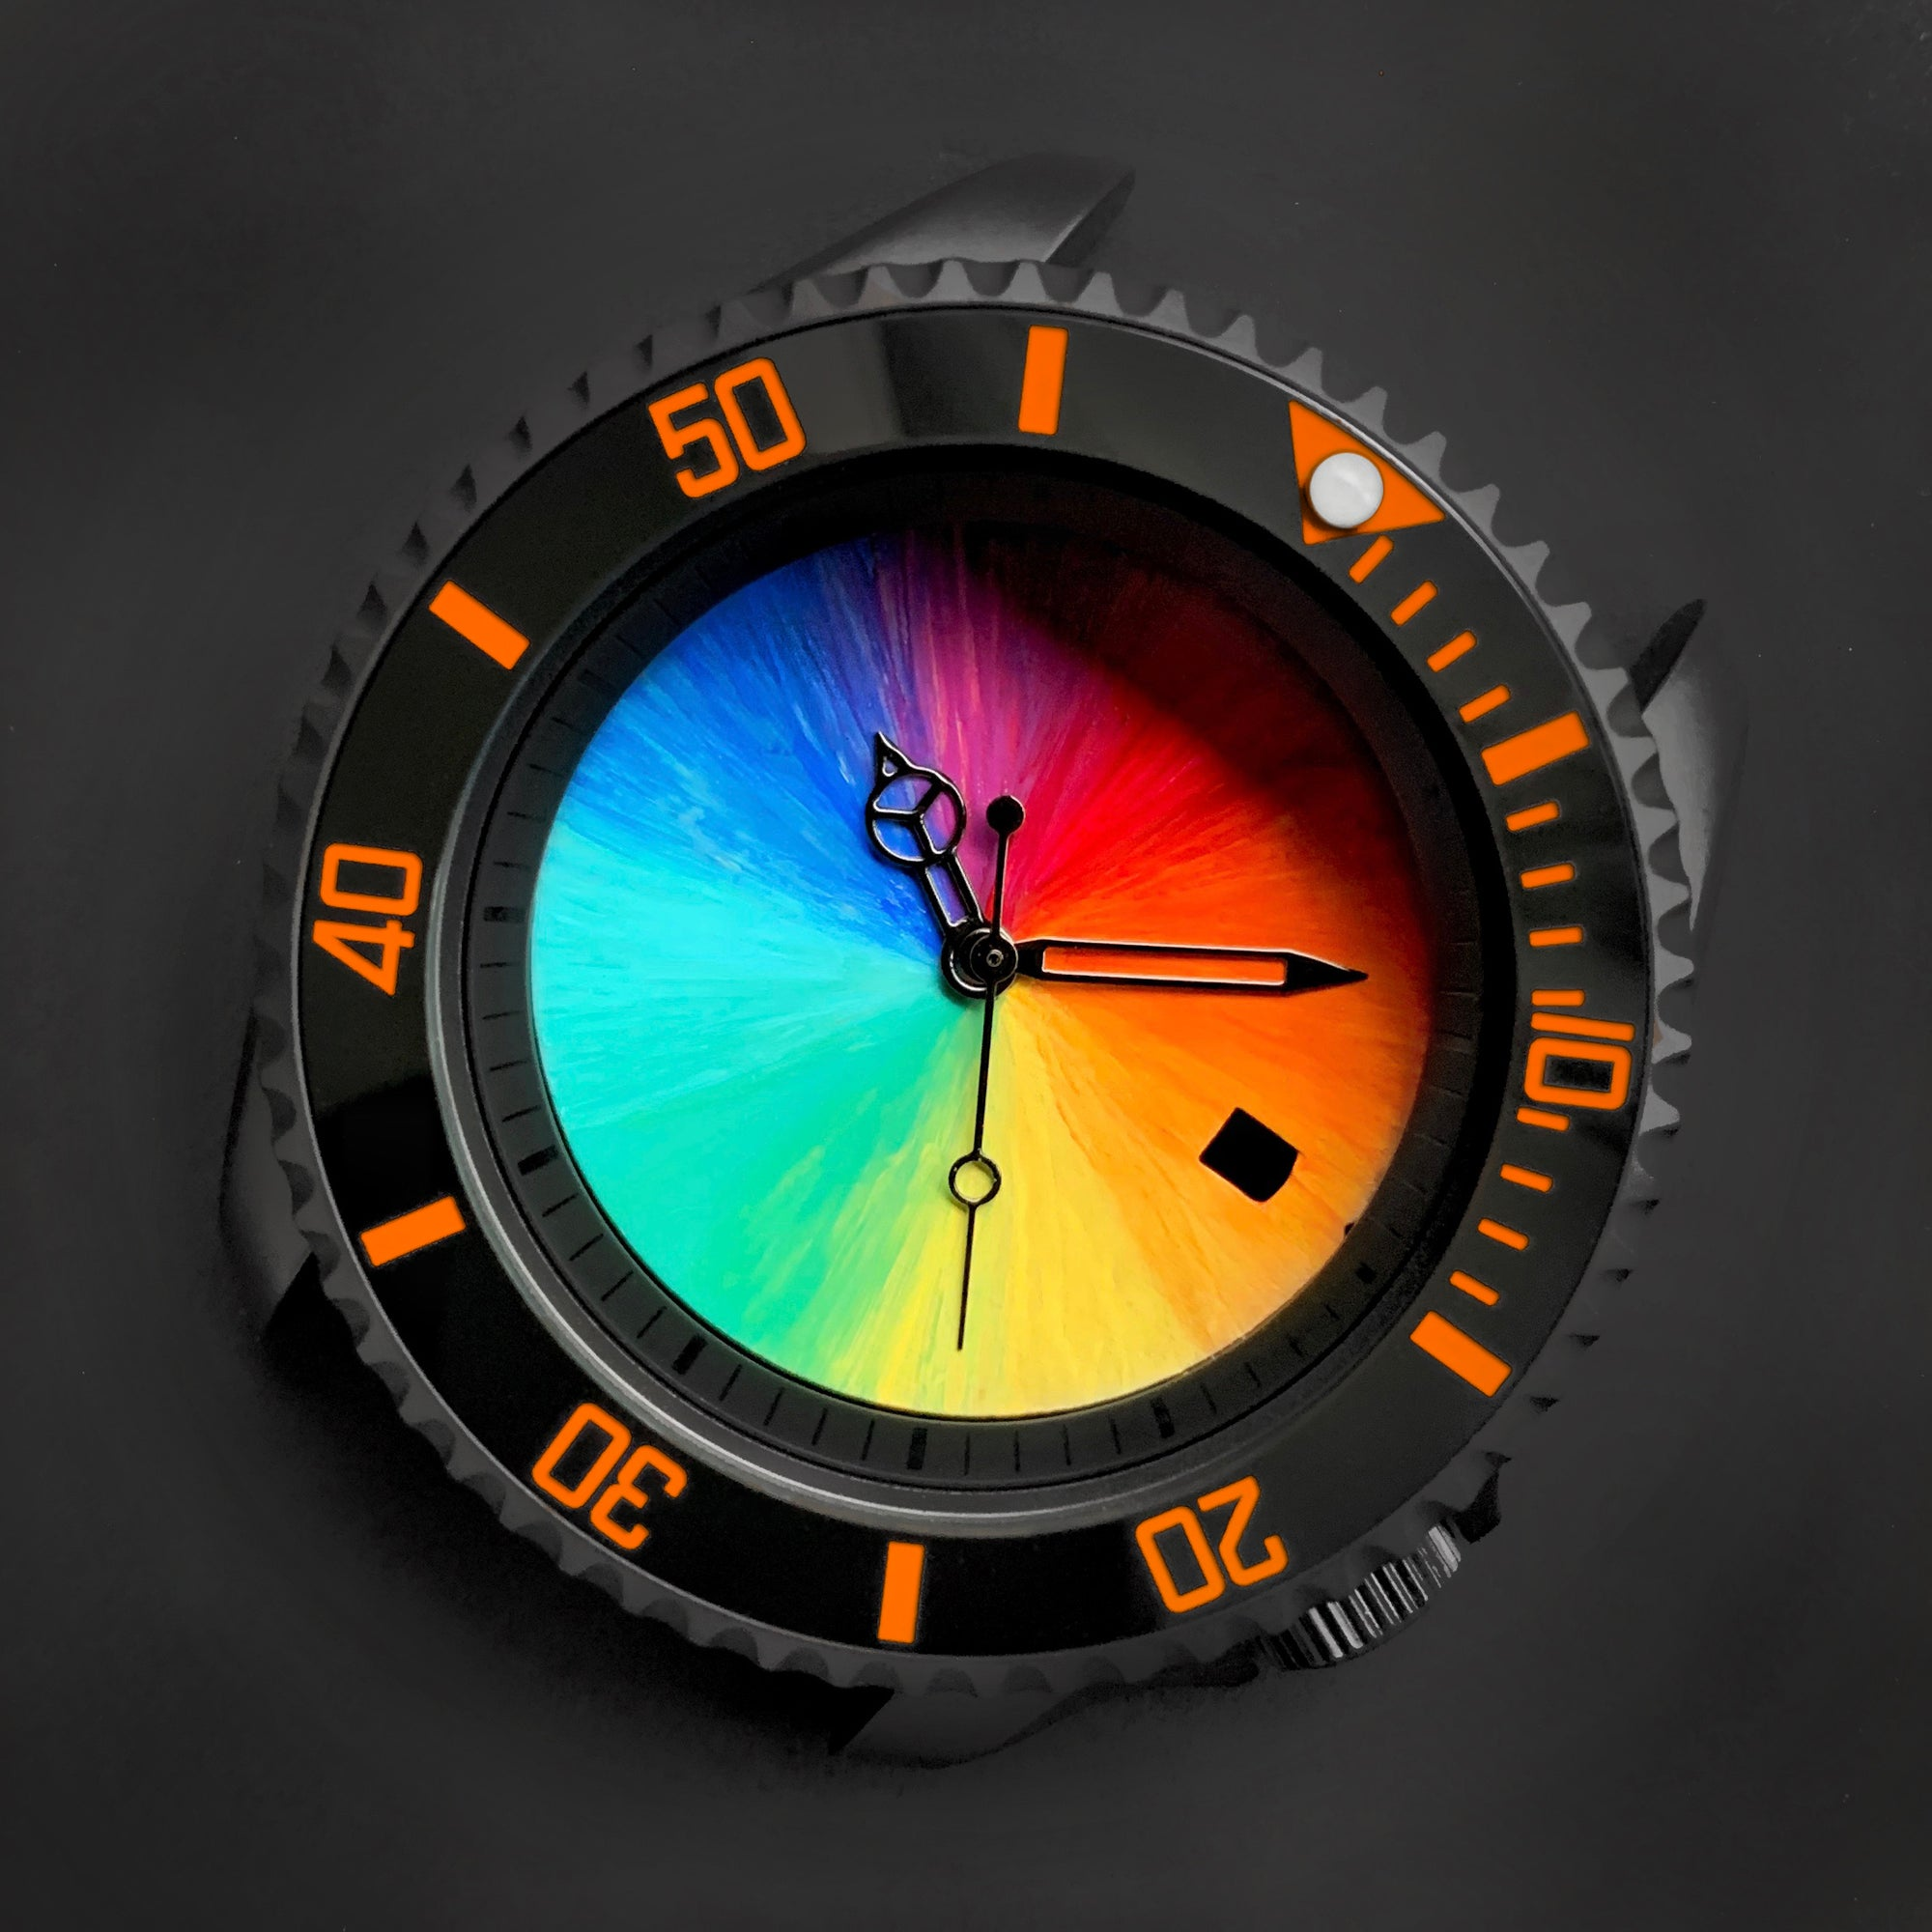 Ceramic Insert - 007 Sub Black X Orange